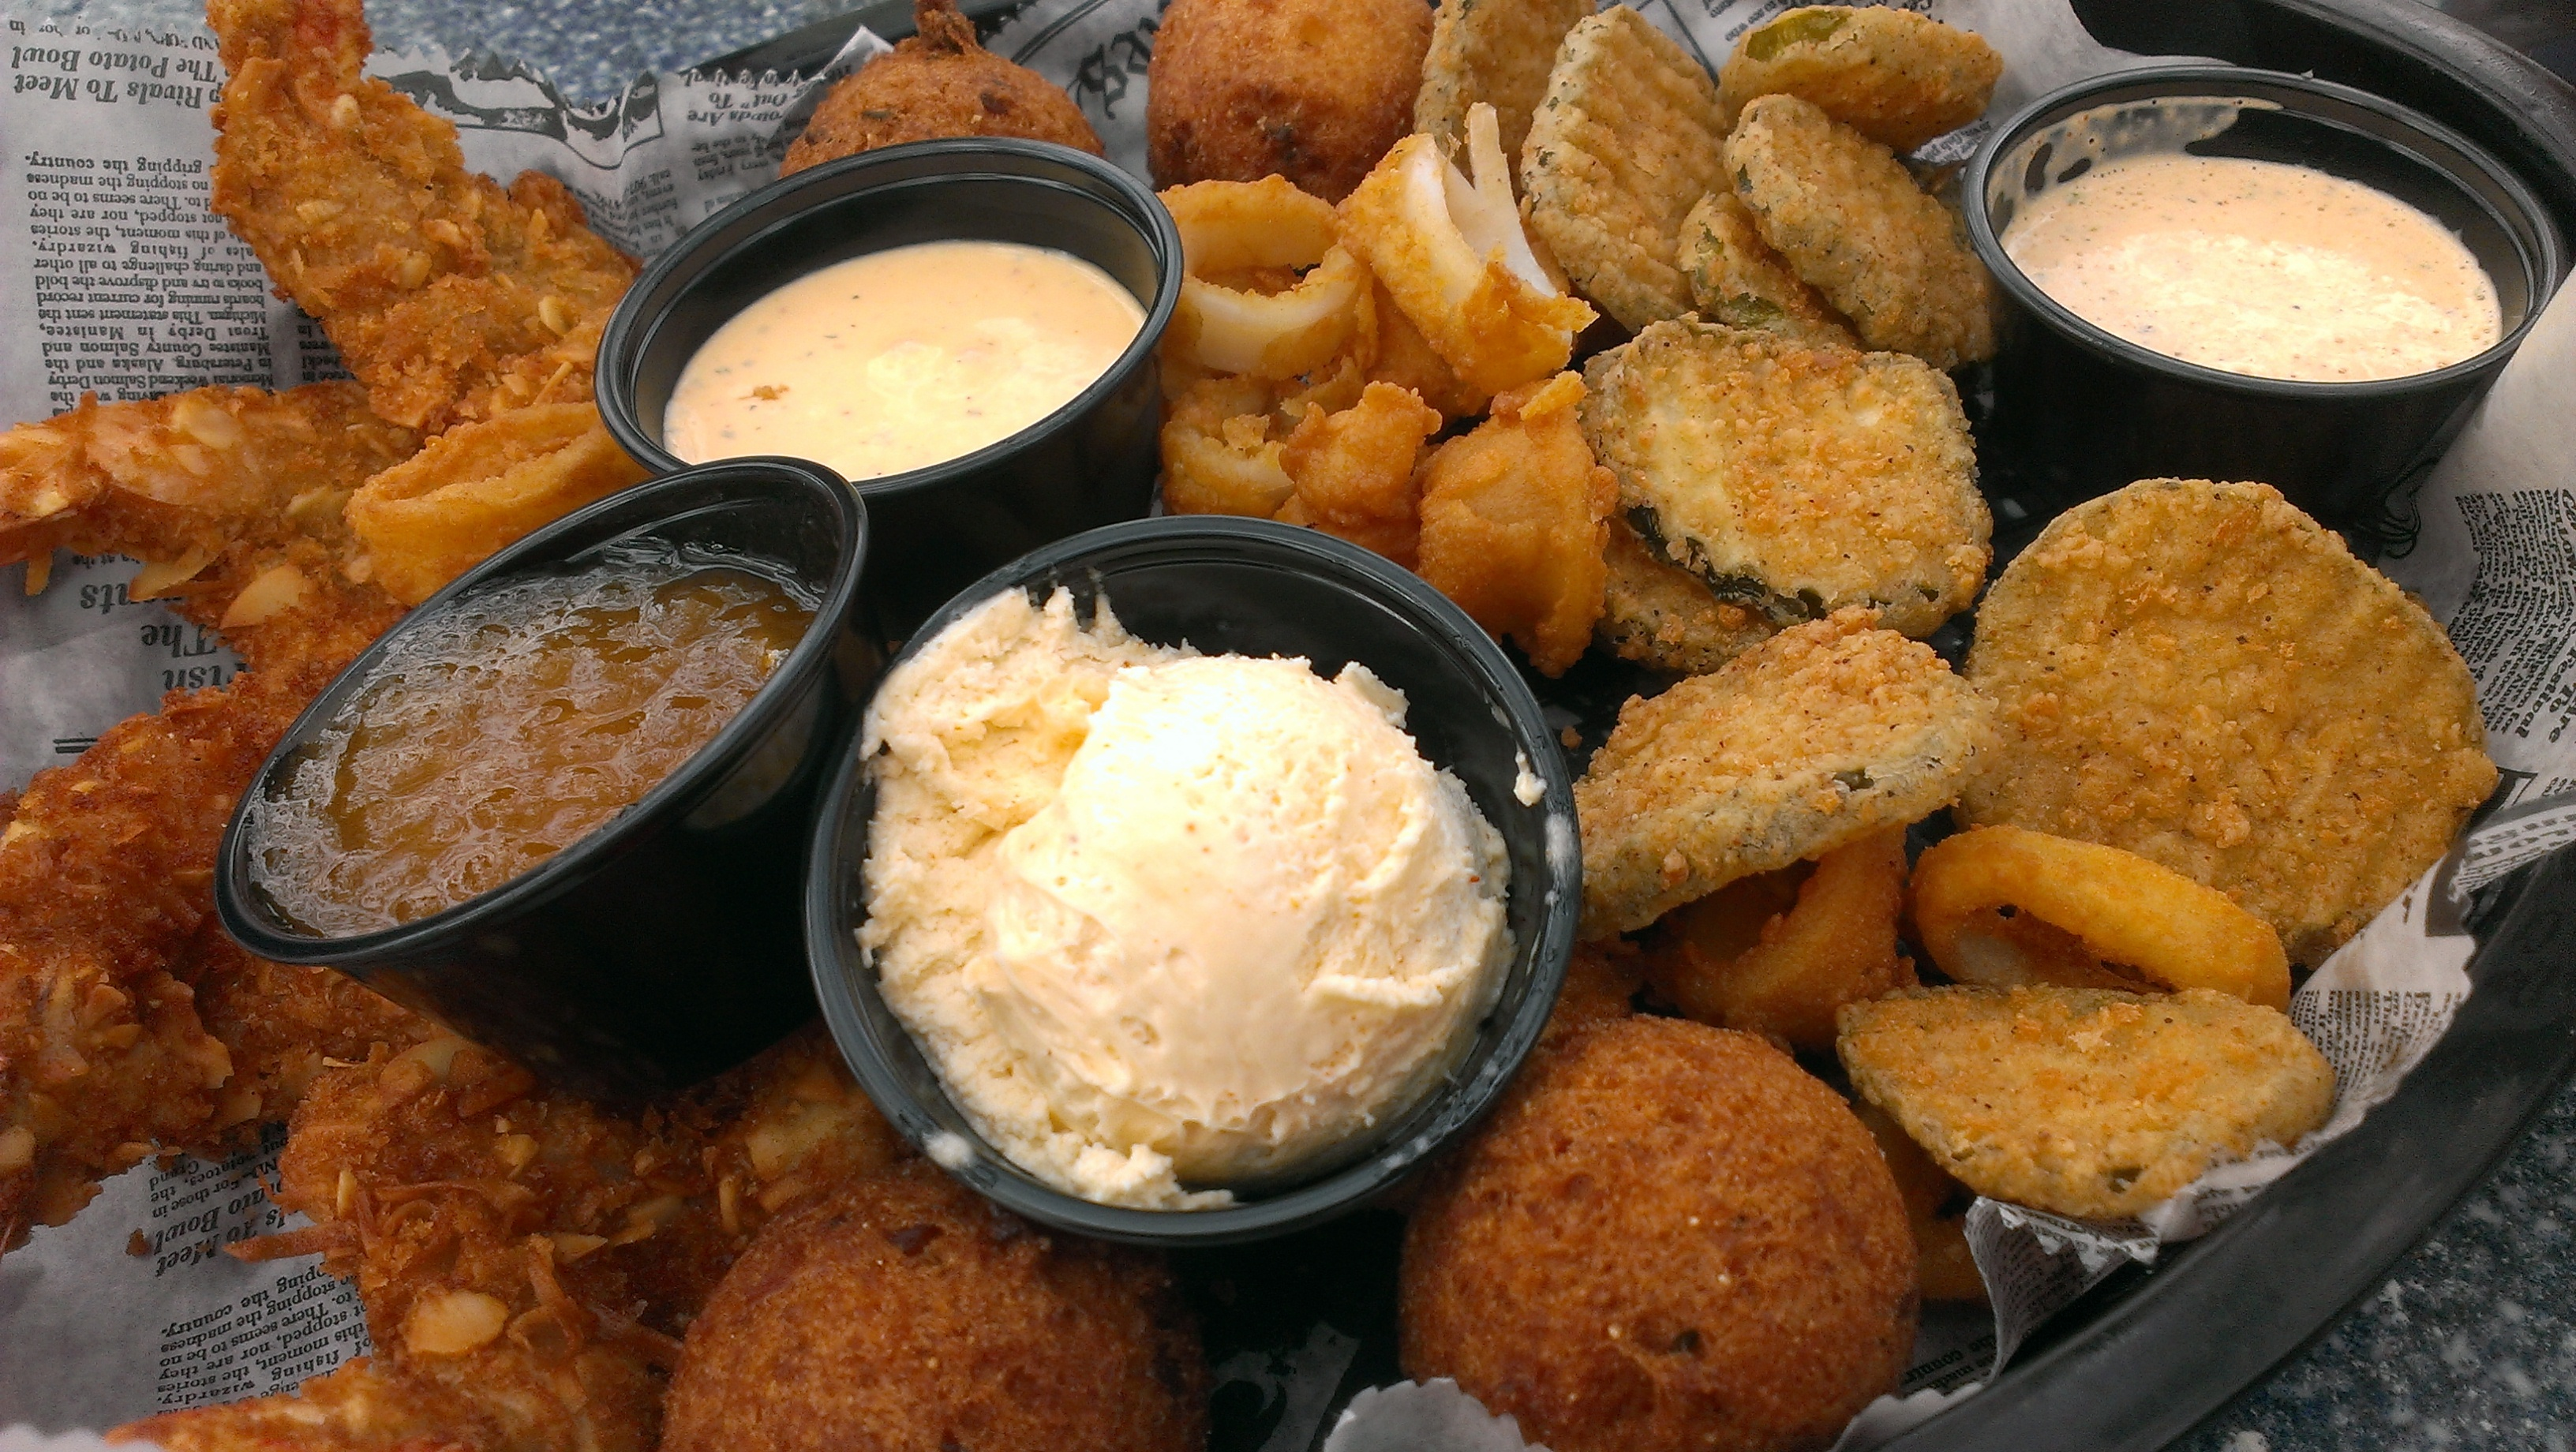 Appetizer Sampler at Skull Creek Boatyard